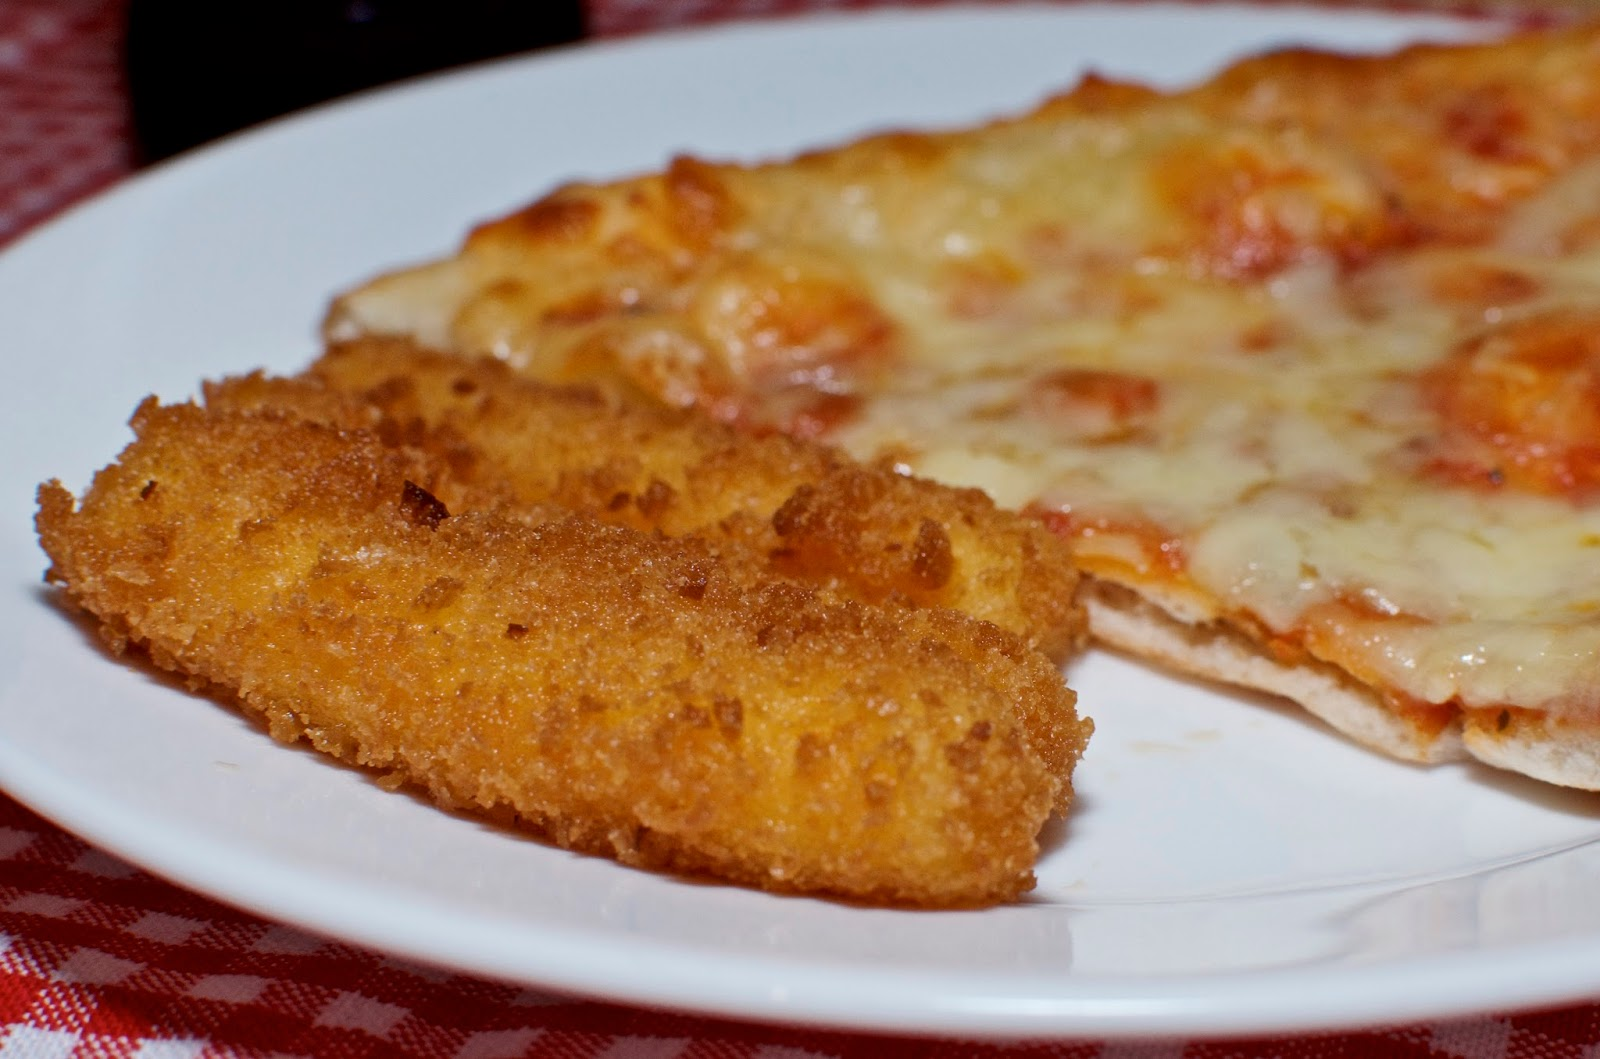 Mozzarella cheese sticks and pizza on white plate